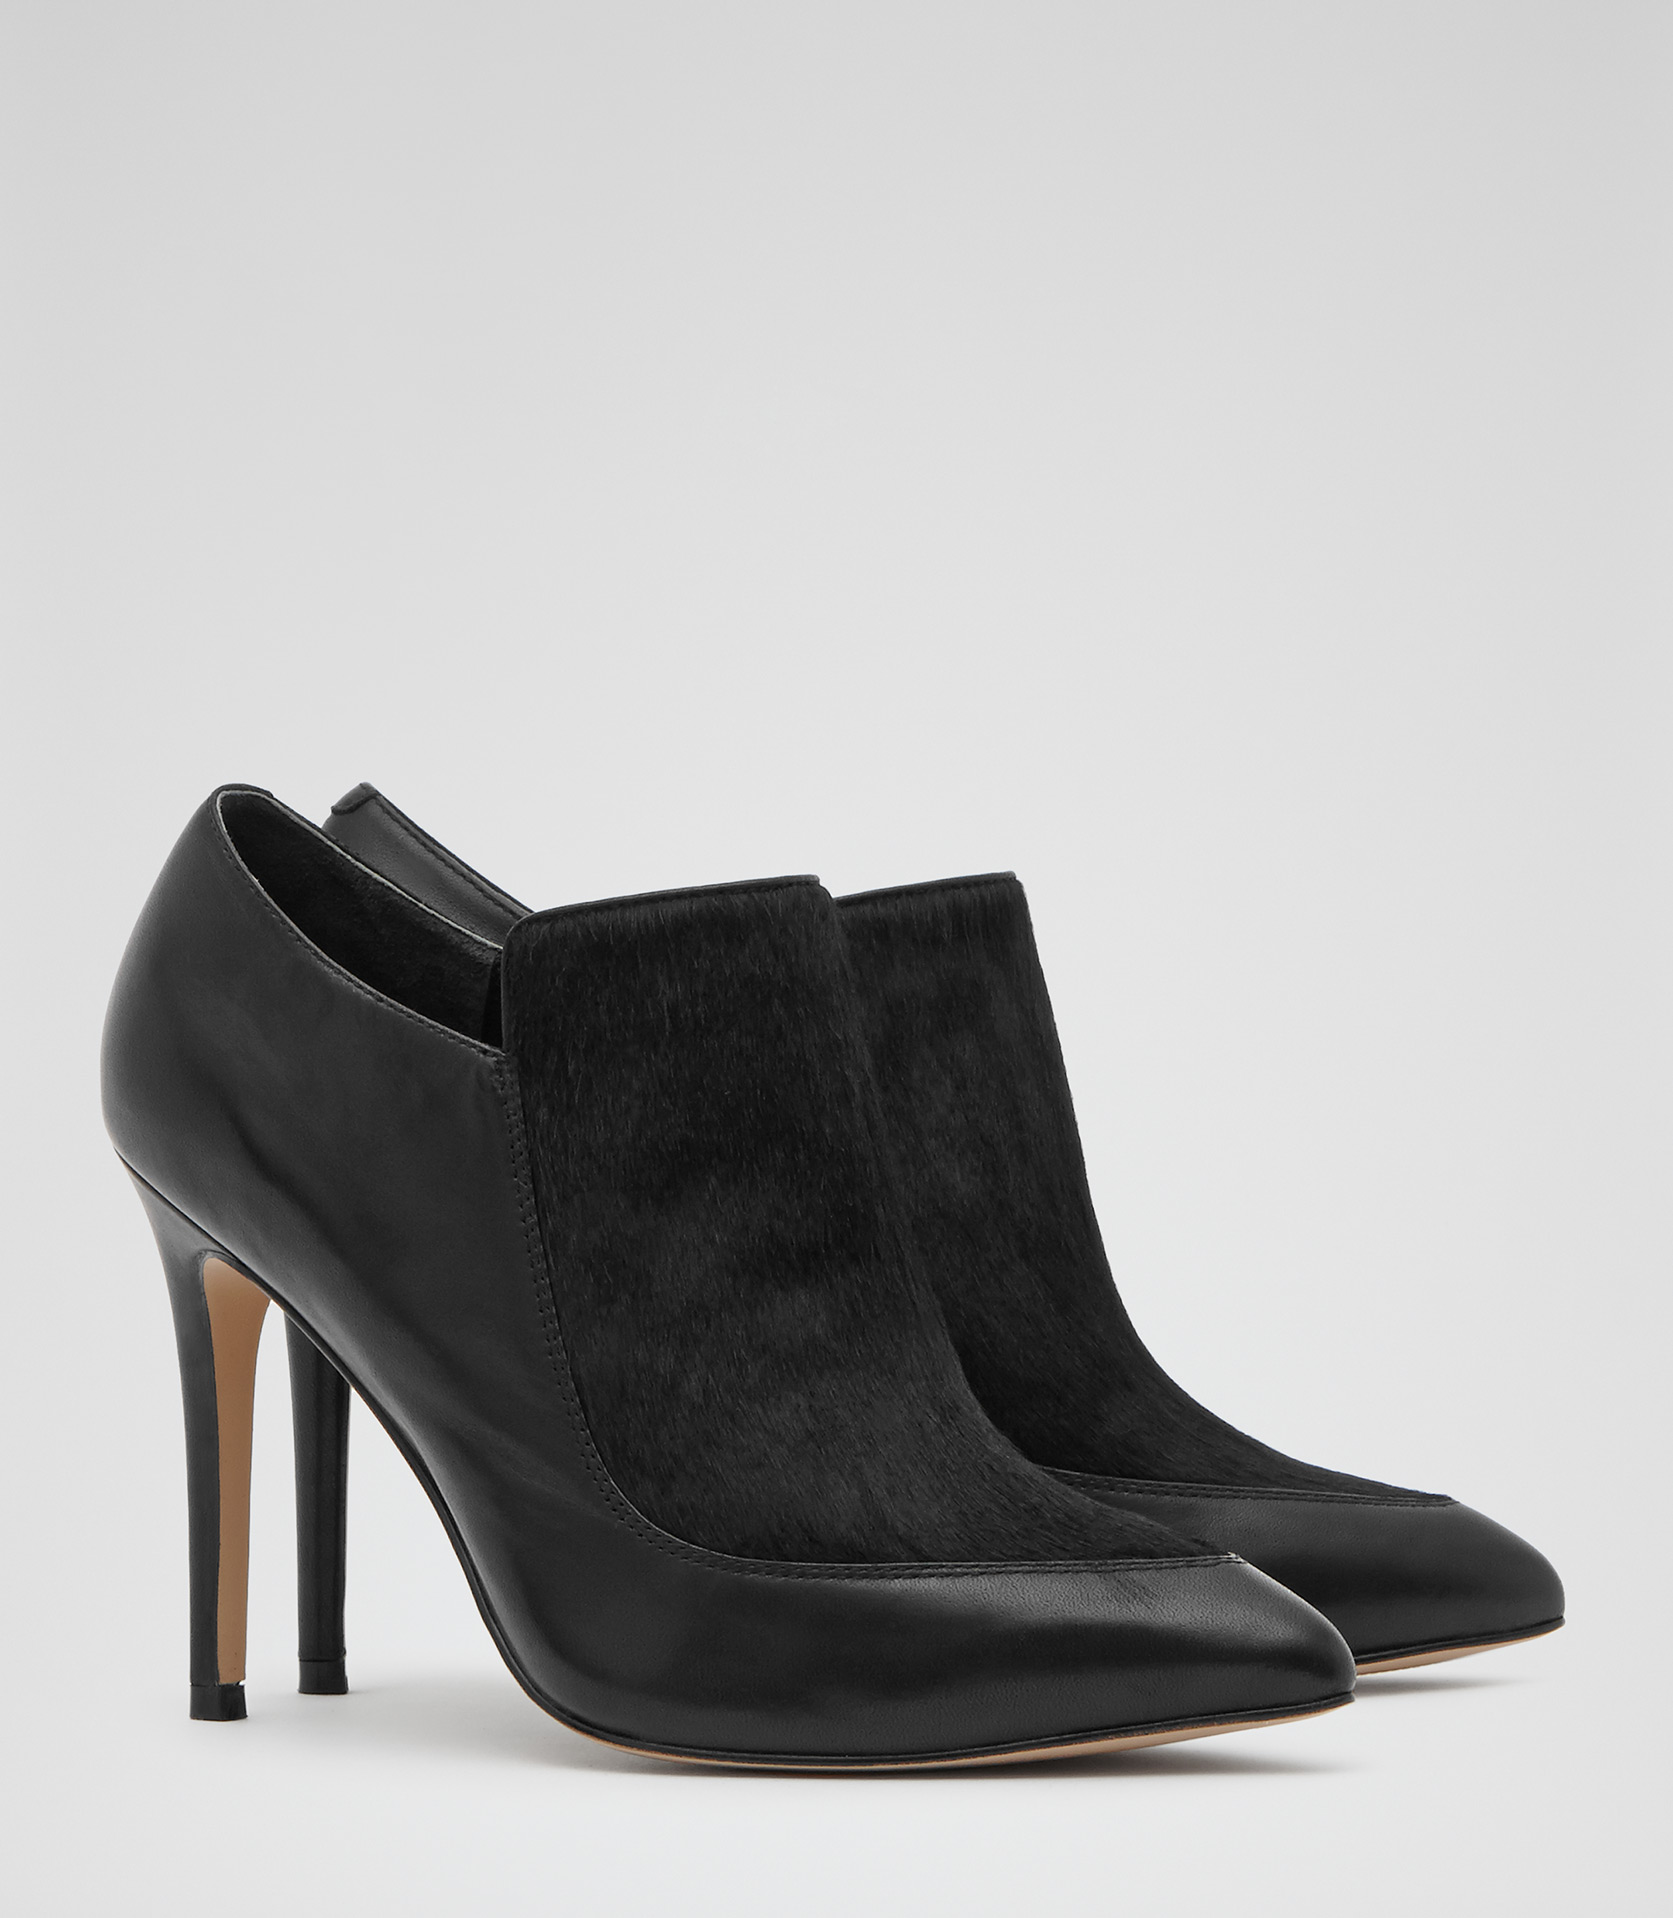 Kalie Black Textured Ankle Boots - REISS